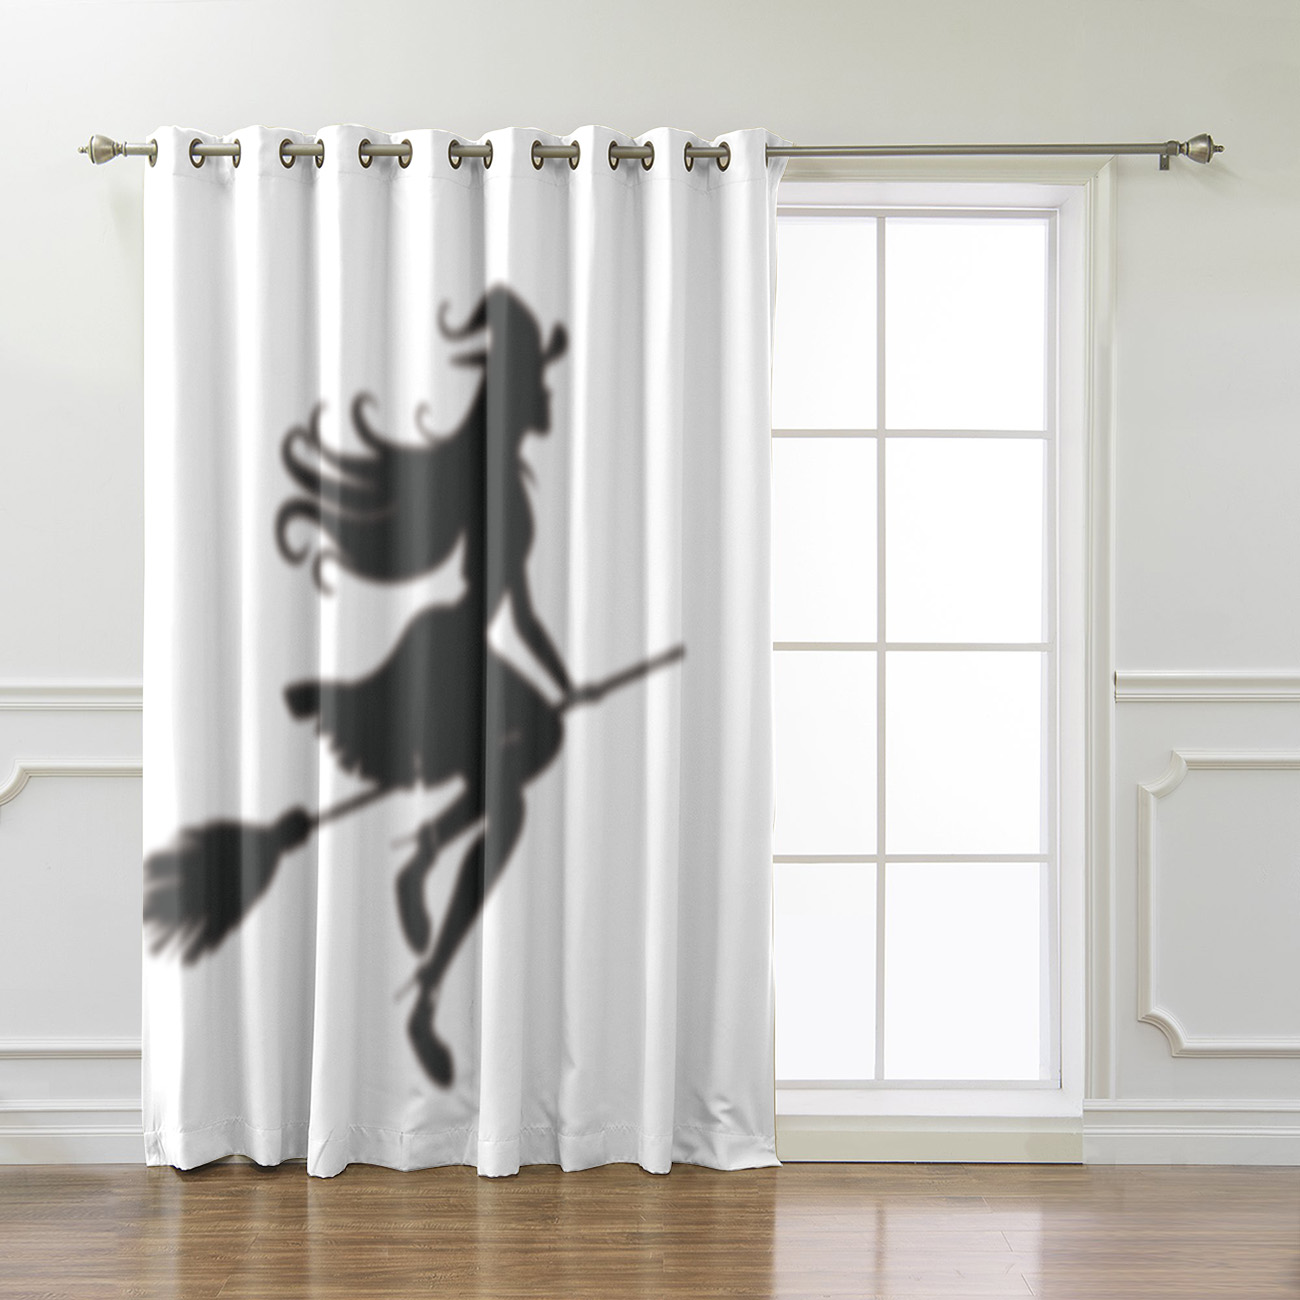 Halloween Style Sexy Witch Silhouette Room Curtains Large Window Window Curtains Dark Window Blinds Living Room Bathroom Curtain